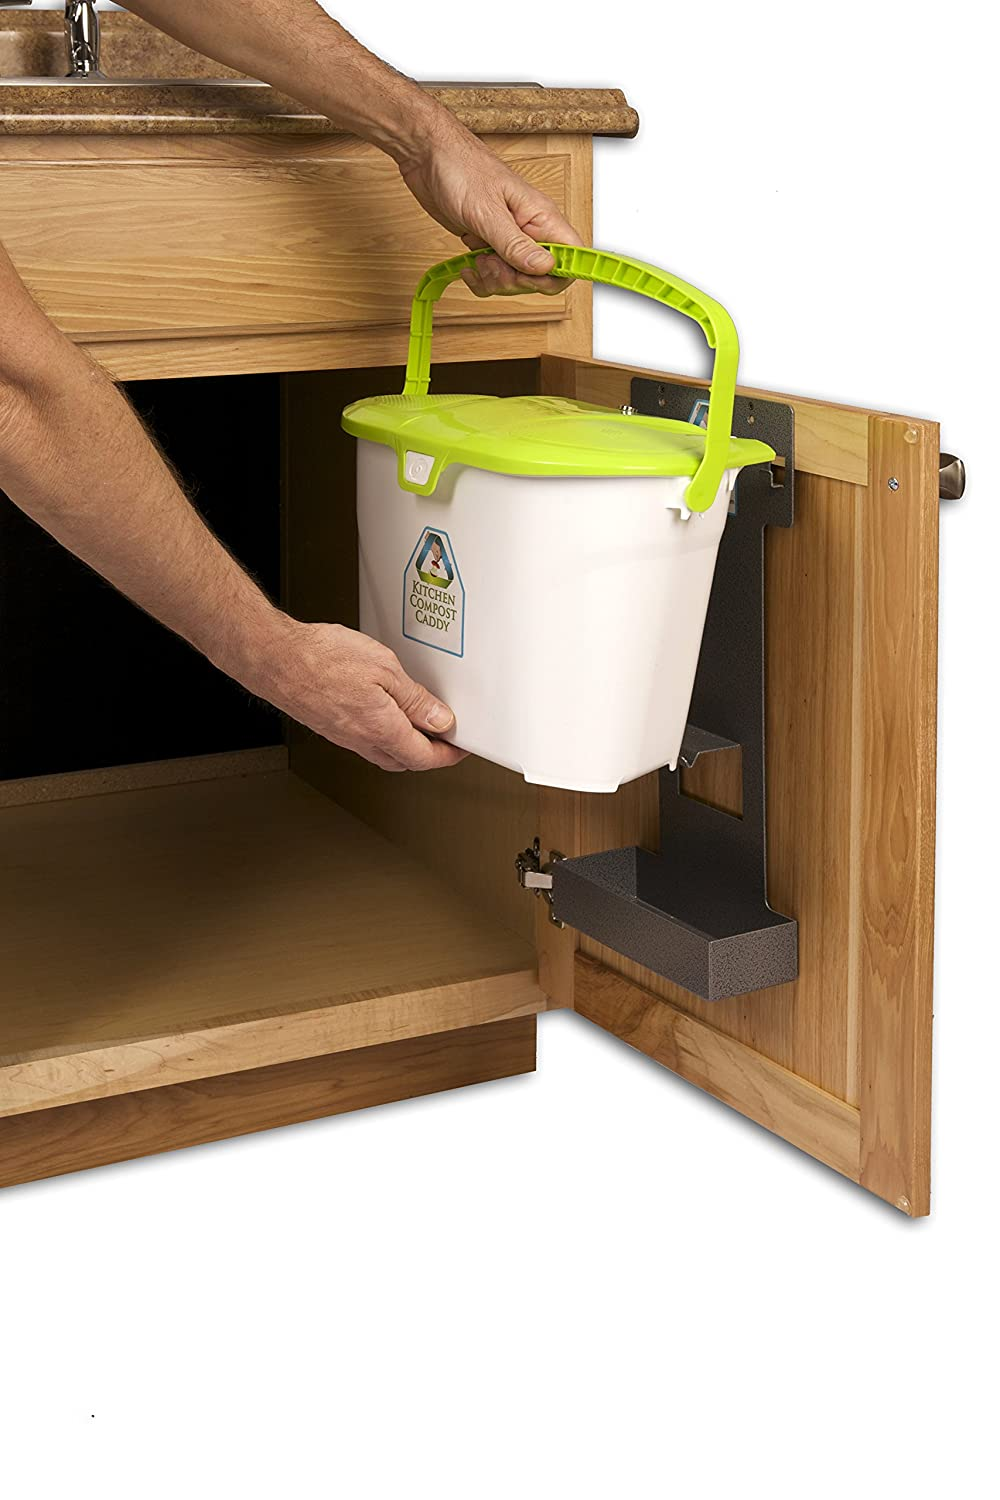 Captivating Amazon.com: Kitchen Compost Caddy Cabinet Mounted Compost Bin   Pail System  With Storage For Compost Bags: Kitchen U0026 Dining